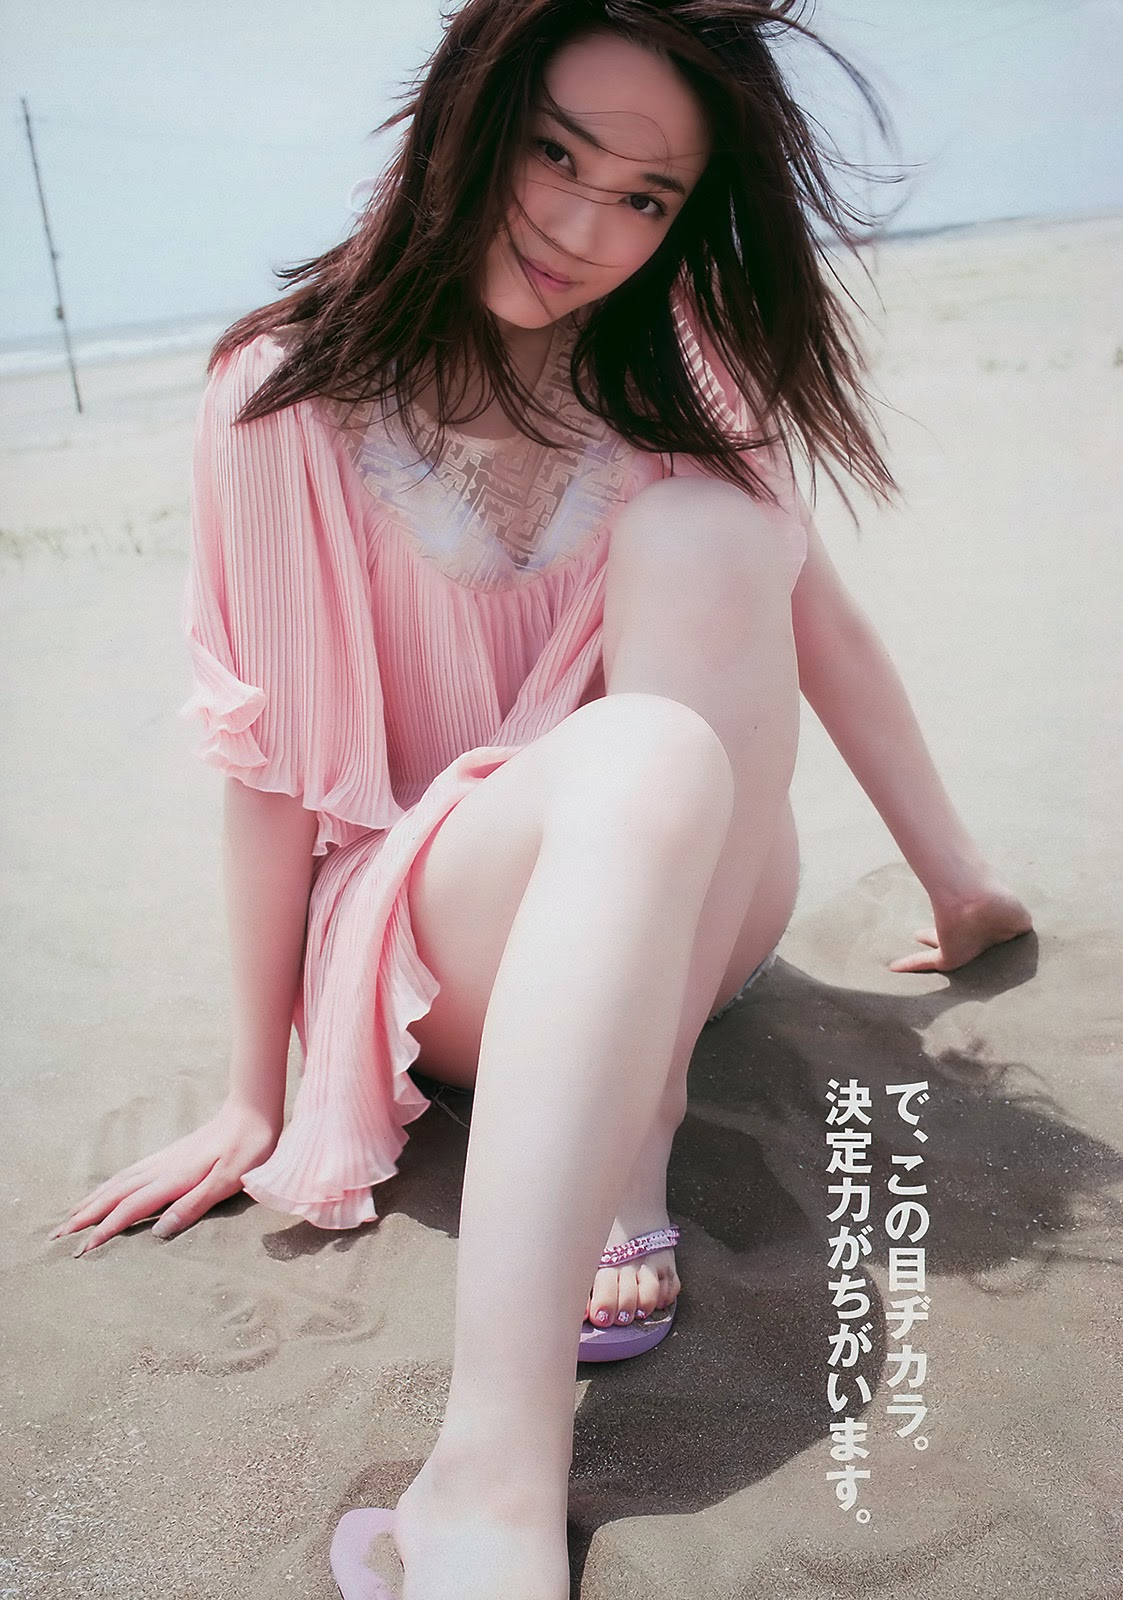 Taki Yukari 滝裕可里 Weekly Playboy No 32 2010 Photos 3